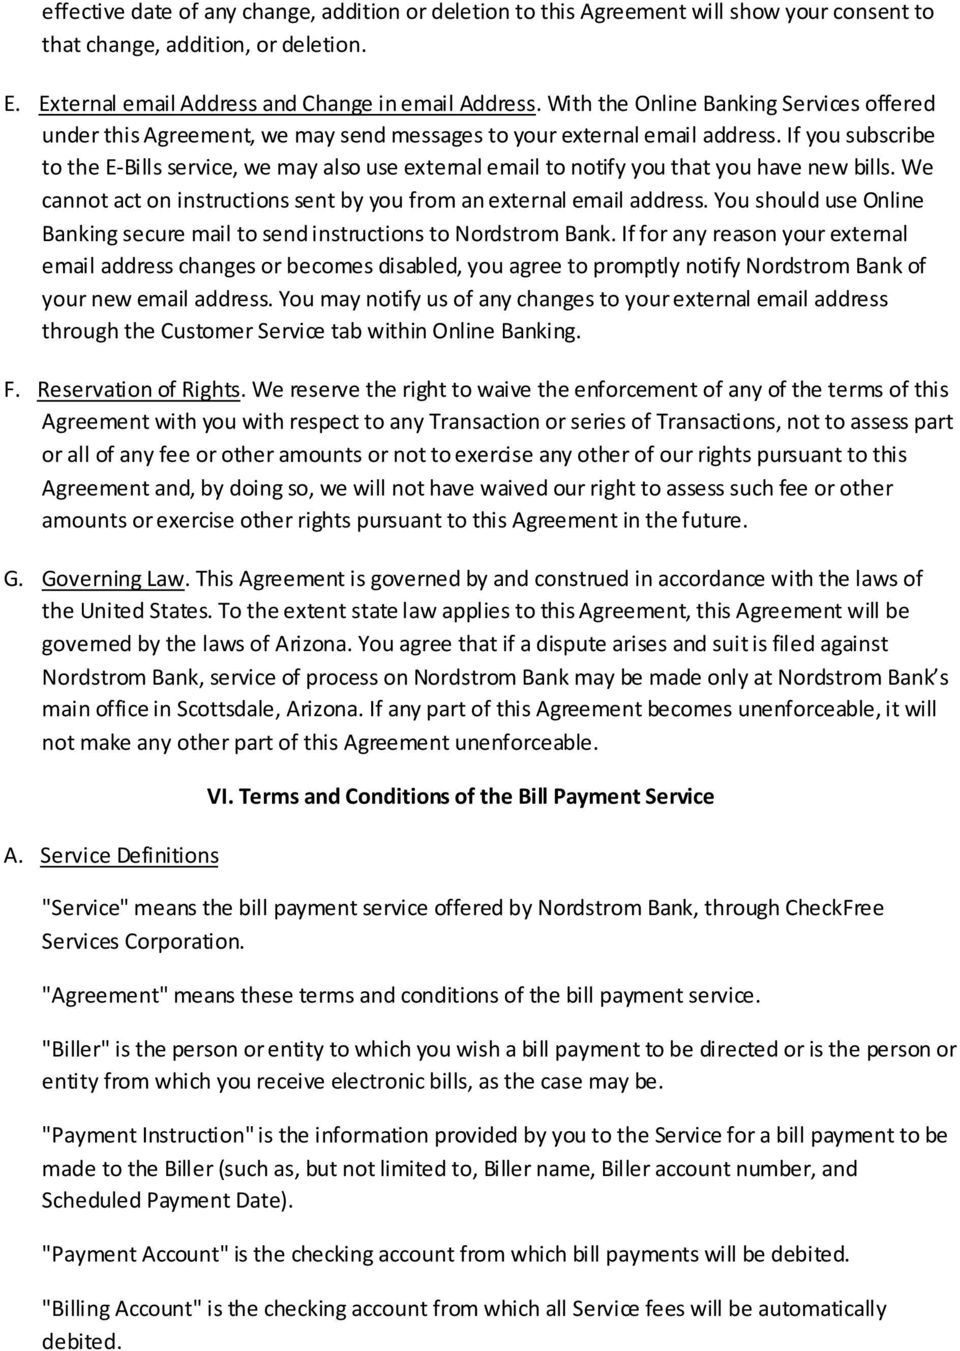 Nordstrom Bank Online Banking And Bill Pay Agreement Pdf